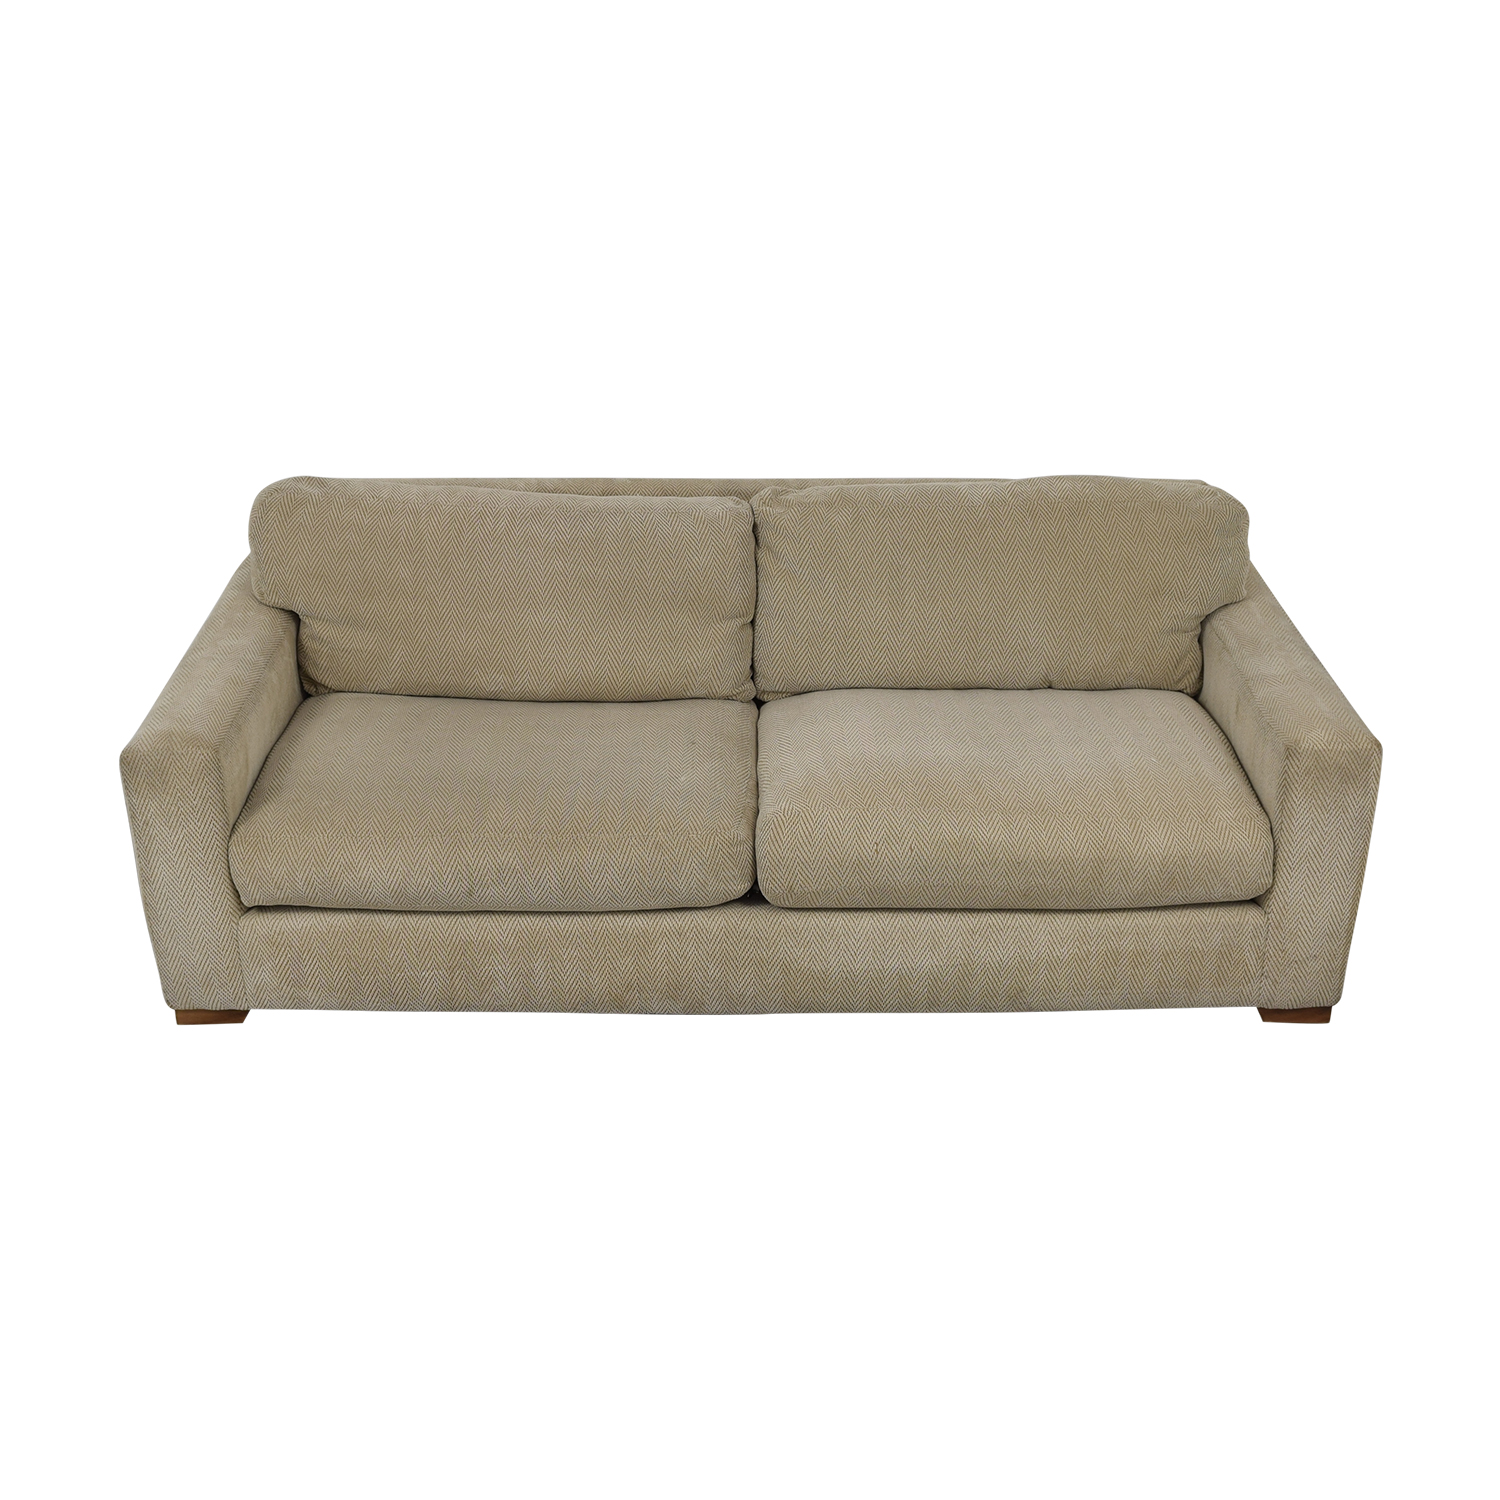 Rowe Furniture Rowe Furniture Dakota Two Cushion Sofa Sofas